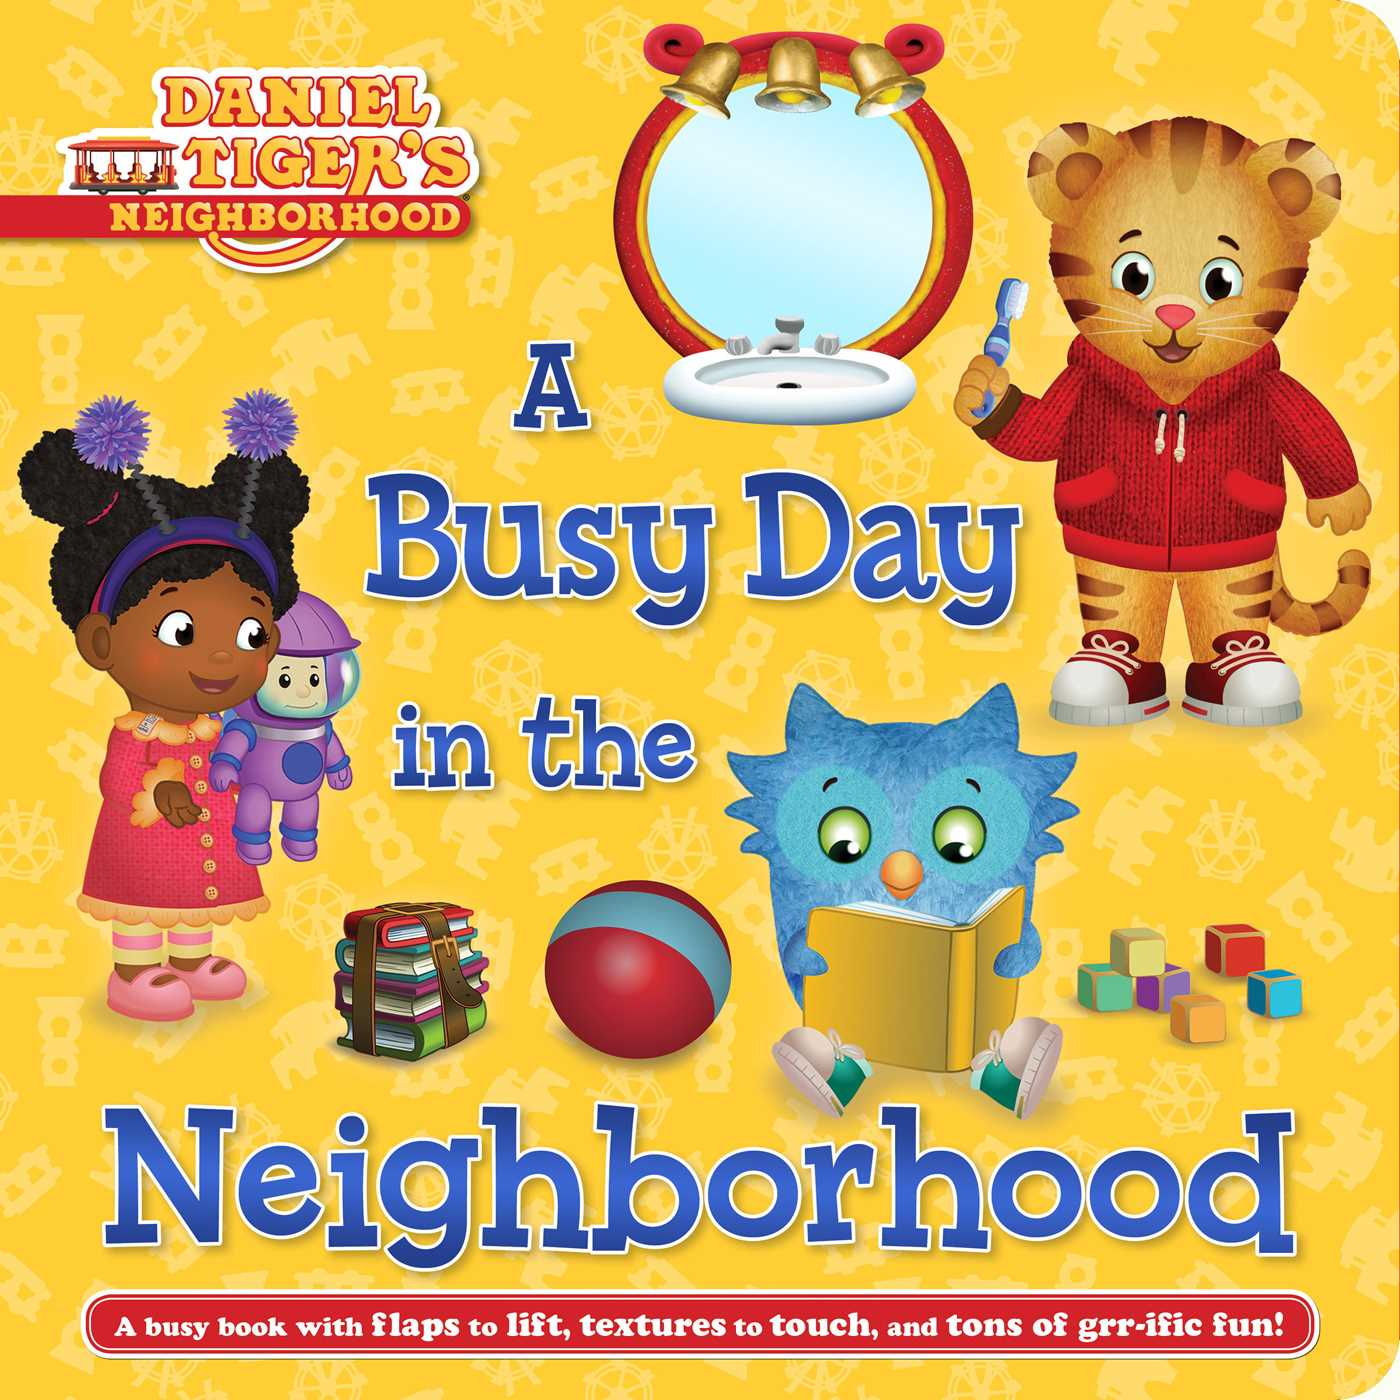 A busy day in the neighborhood 9781481485838 hr